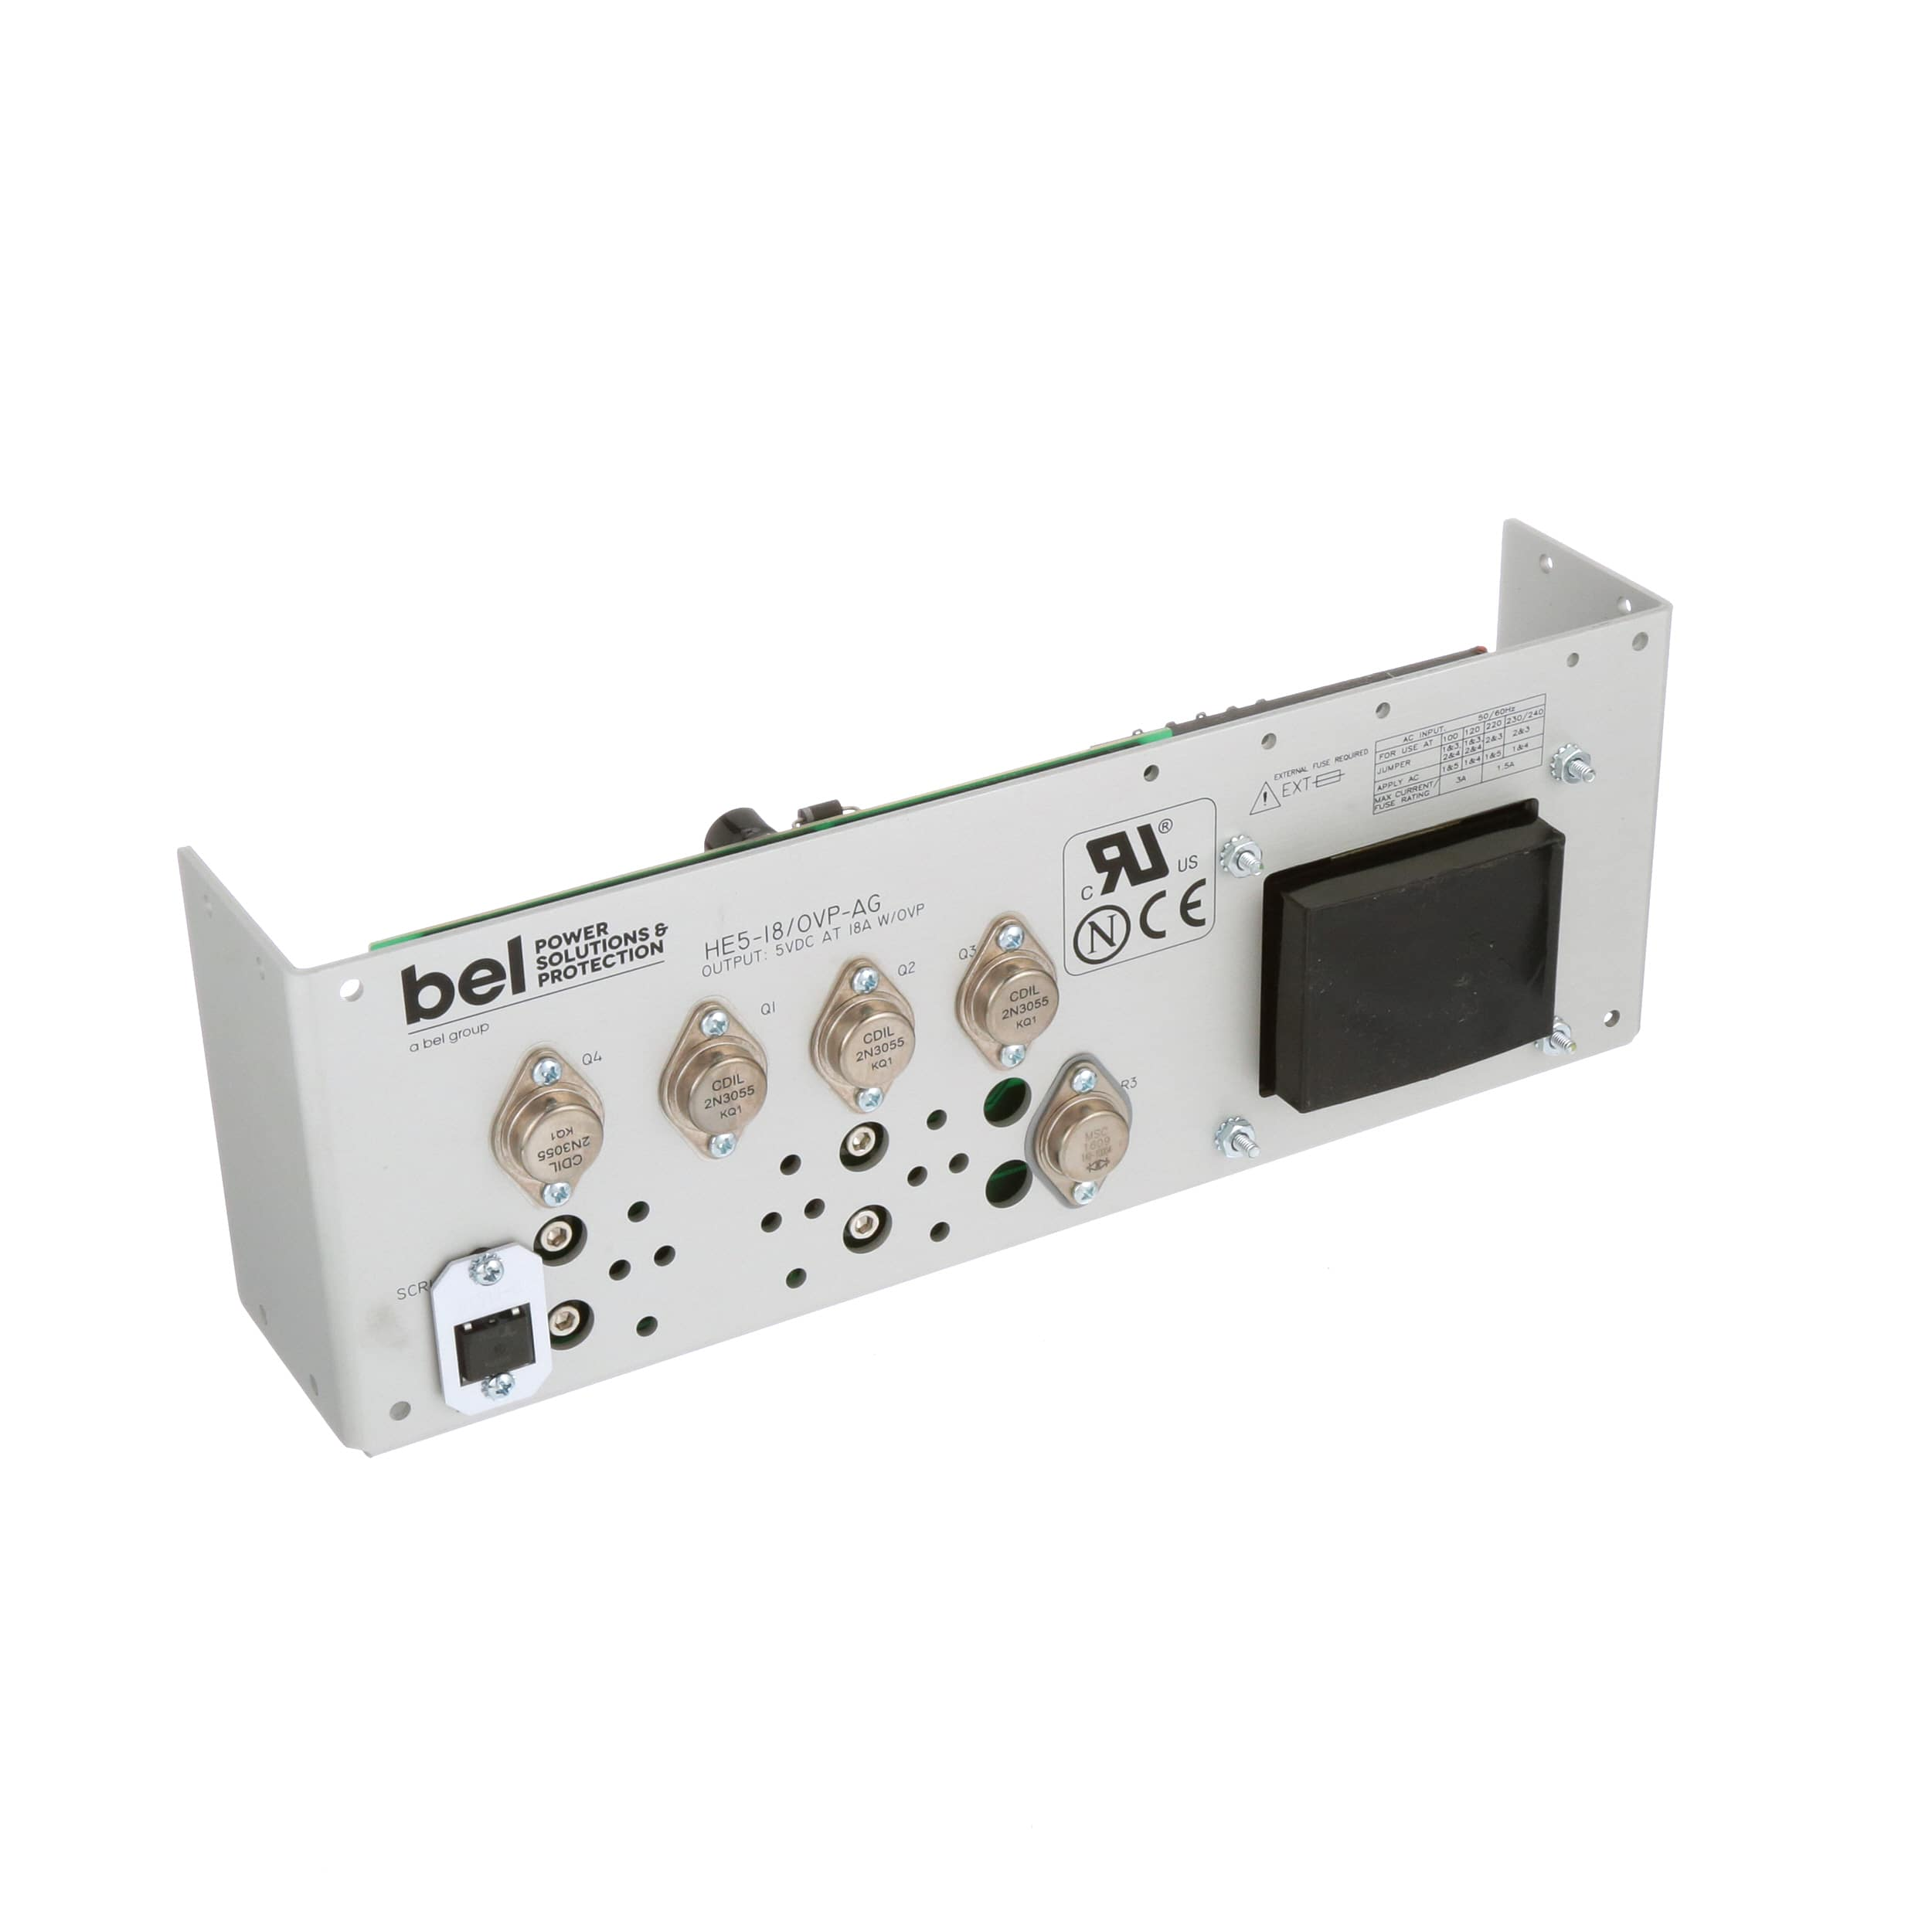 Bel Power Solutions He5 18 Ovp Ag Supply International 5v System Protected From 24v Supplies Linear 18a Rohs Compliant Allied Electronics Automation